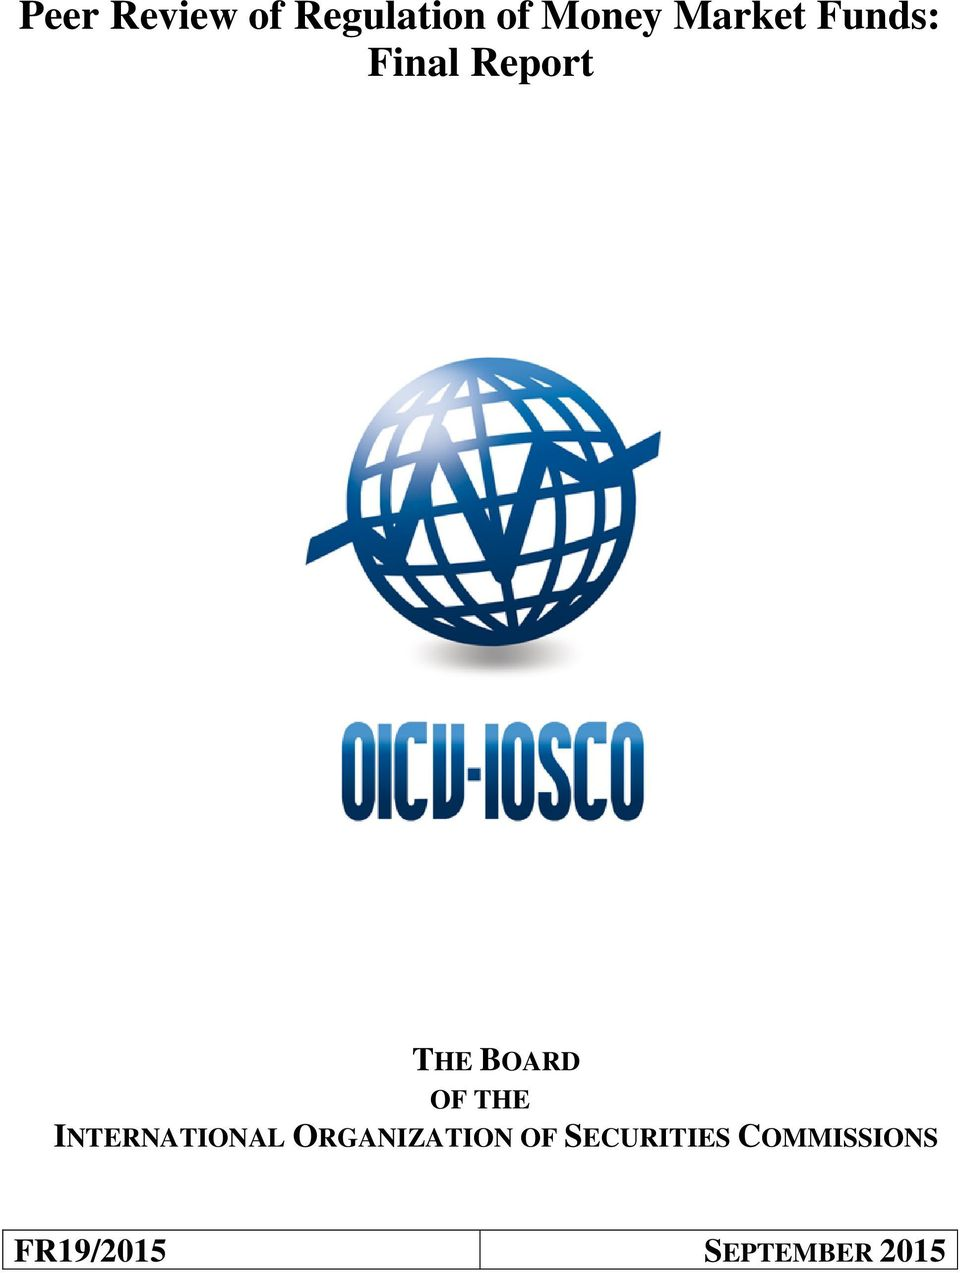 OF THE INTERNATIONAL ORGANIZATION OF